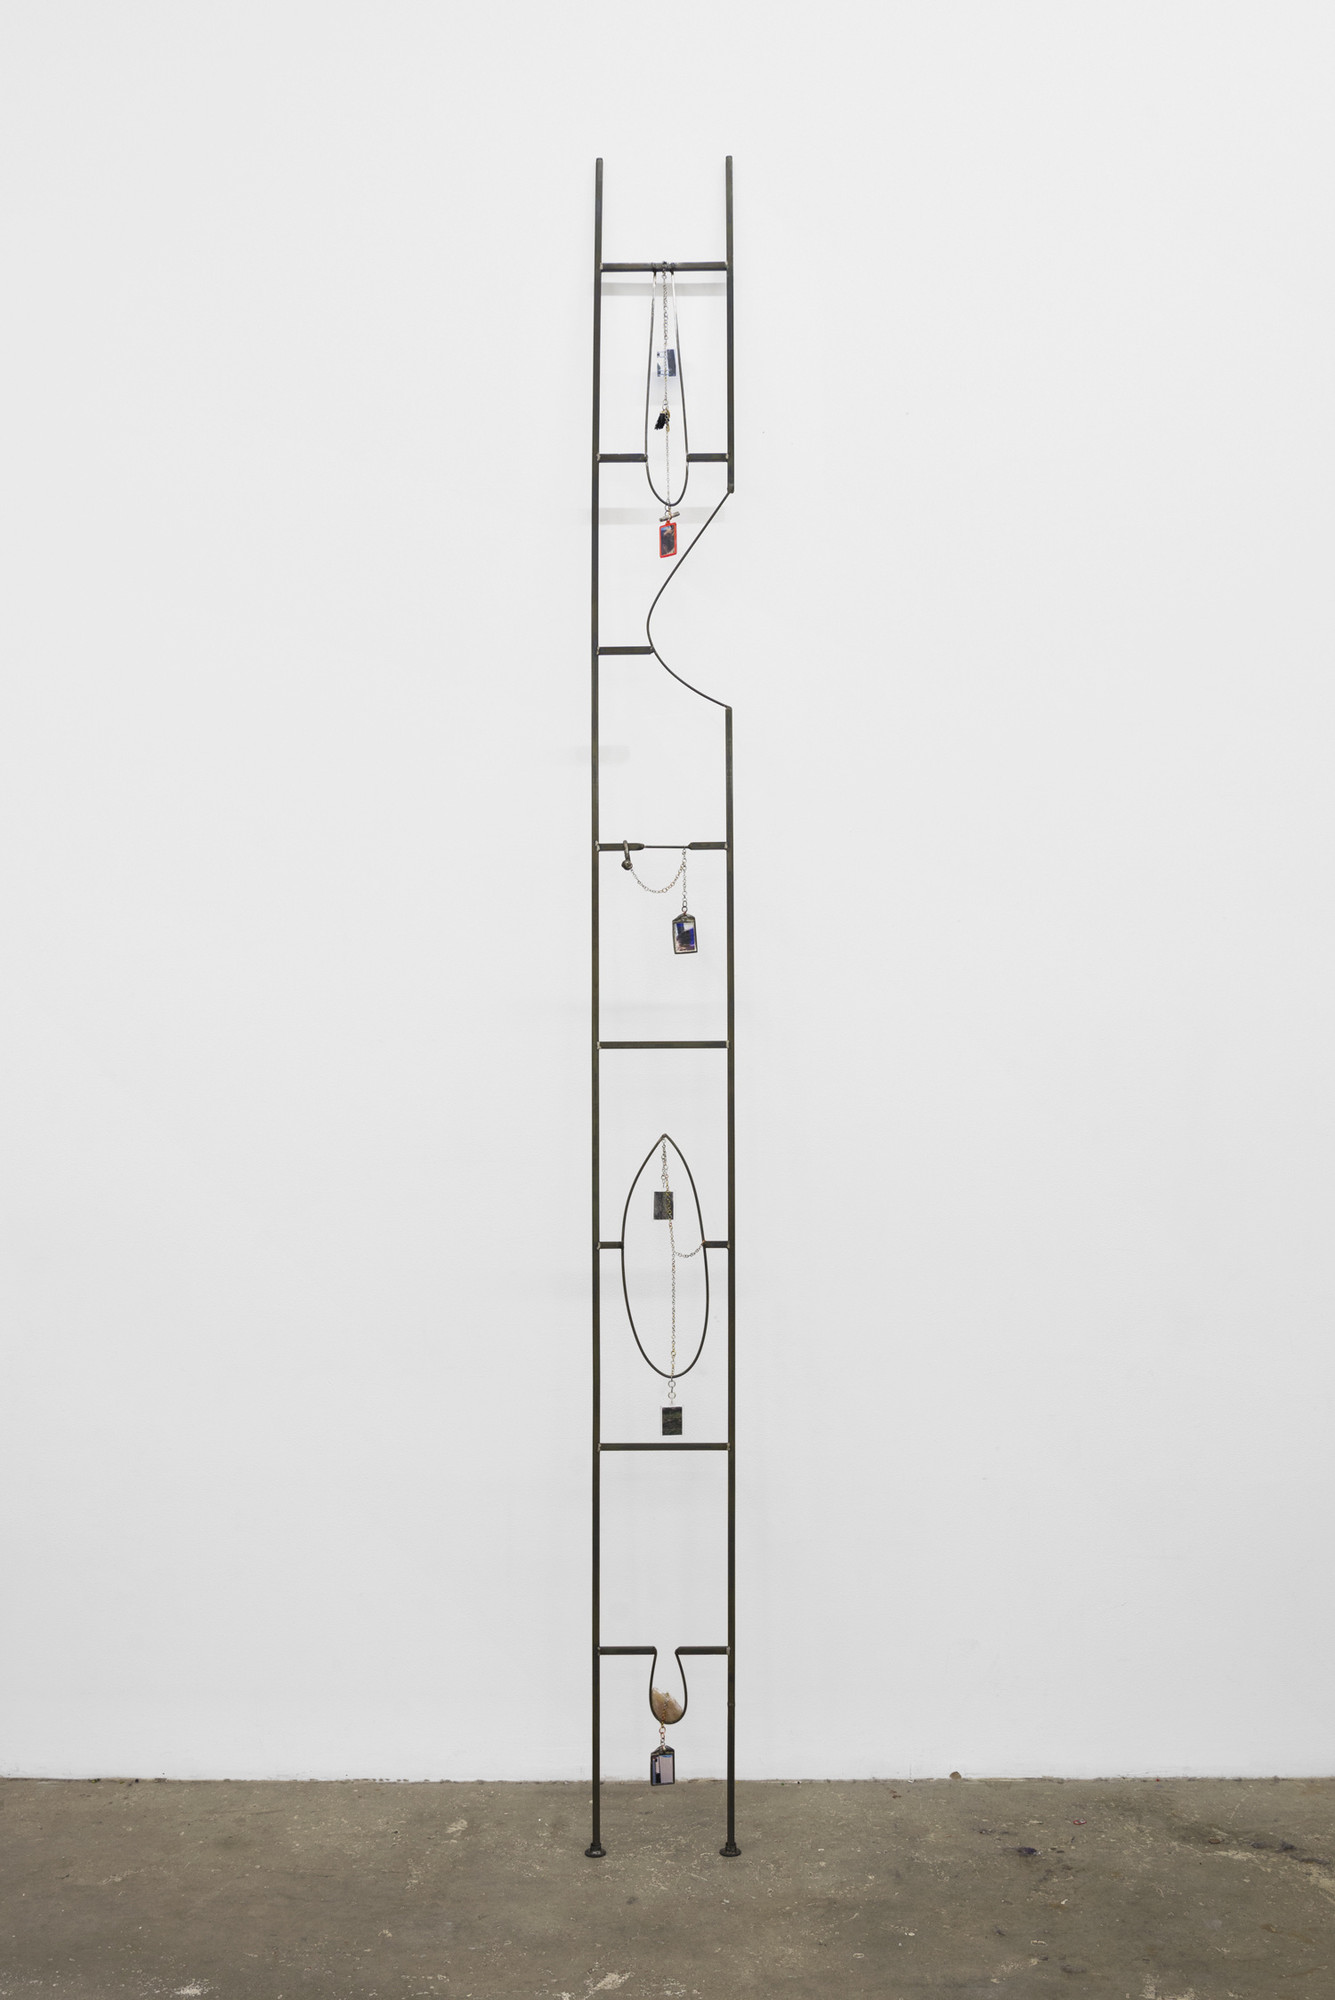 Em Rooney. _Pictures, Keychains, Freedom Ladder_. 2016. Welded steel, picture keychains, chromogenic color prints, pewter charms, chain, 119 x 9 inches (302.3 x 22.9 cm). Courtesy the artist and Bodega, New York. © 2018 Em Rooney